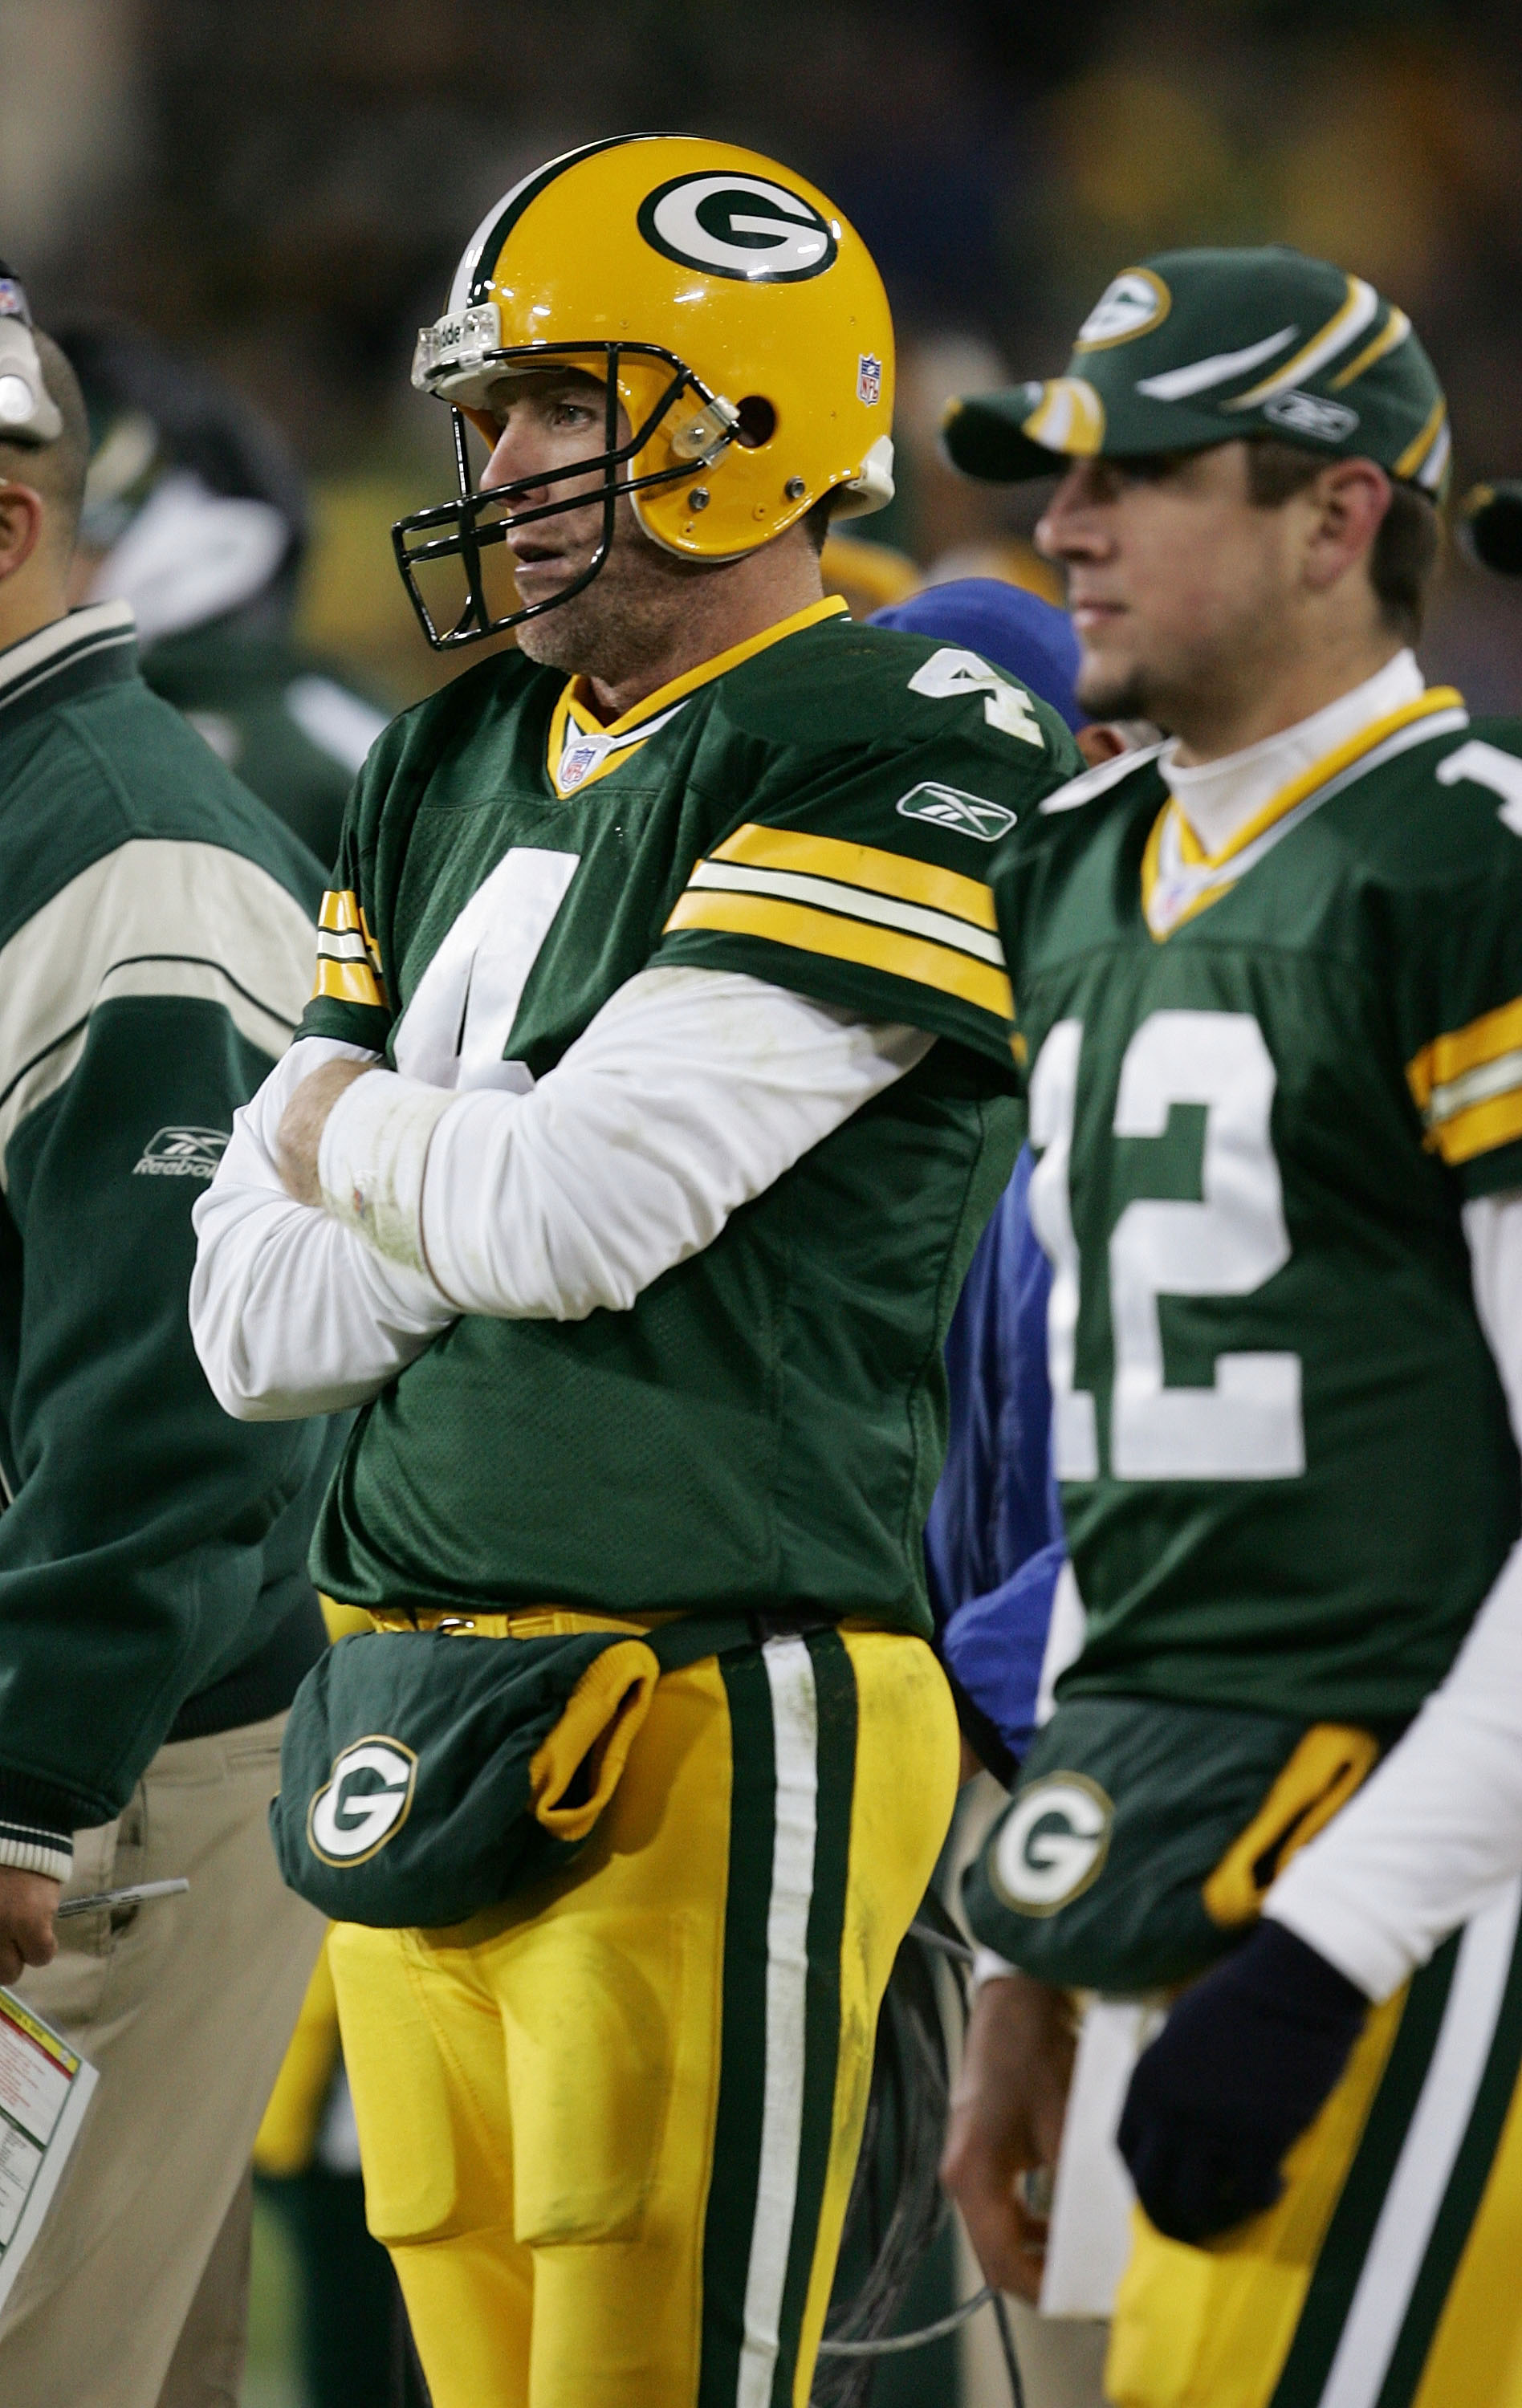 Rodgers was overpaid clipboard holder for 3 seasons